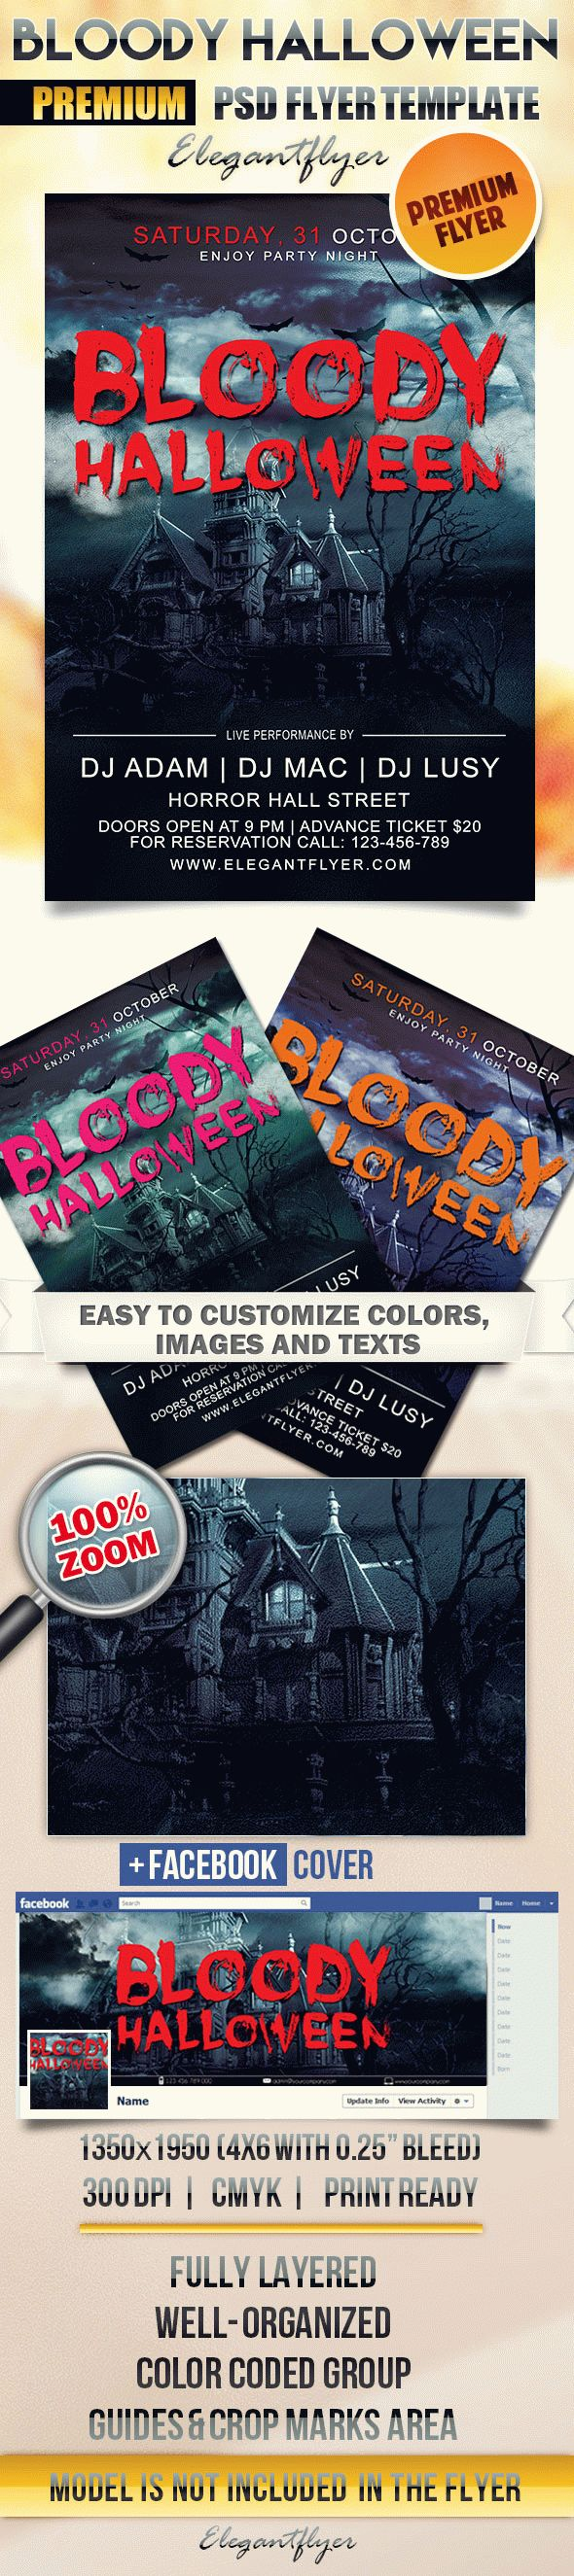 Flyer Template for Bloody Halloween Theme